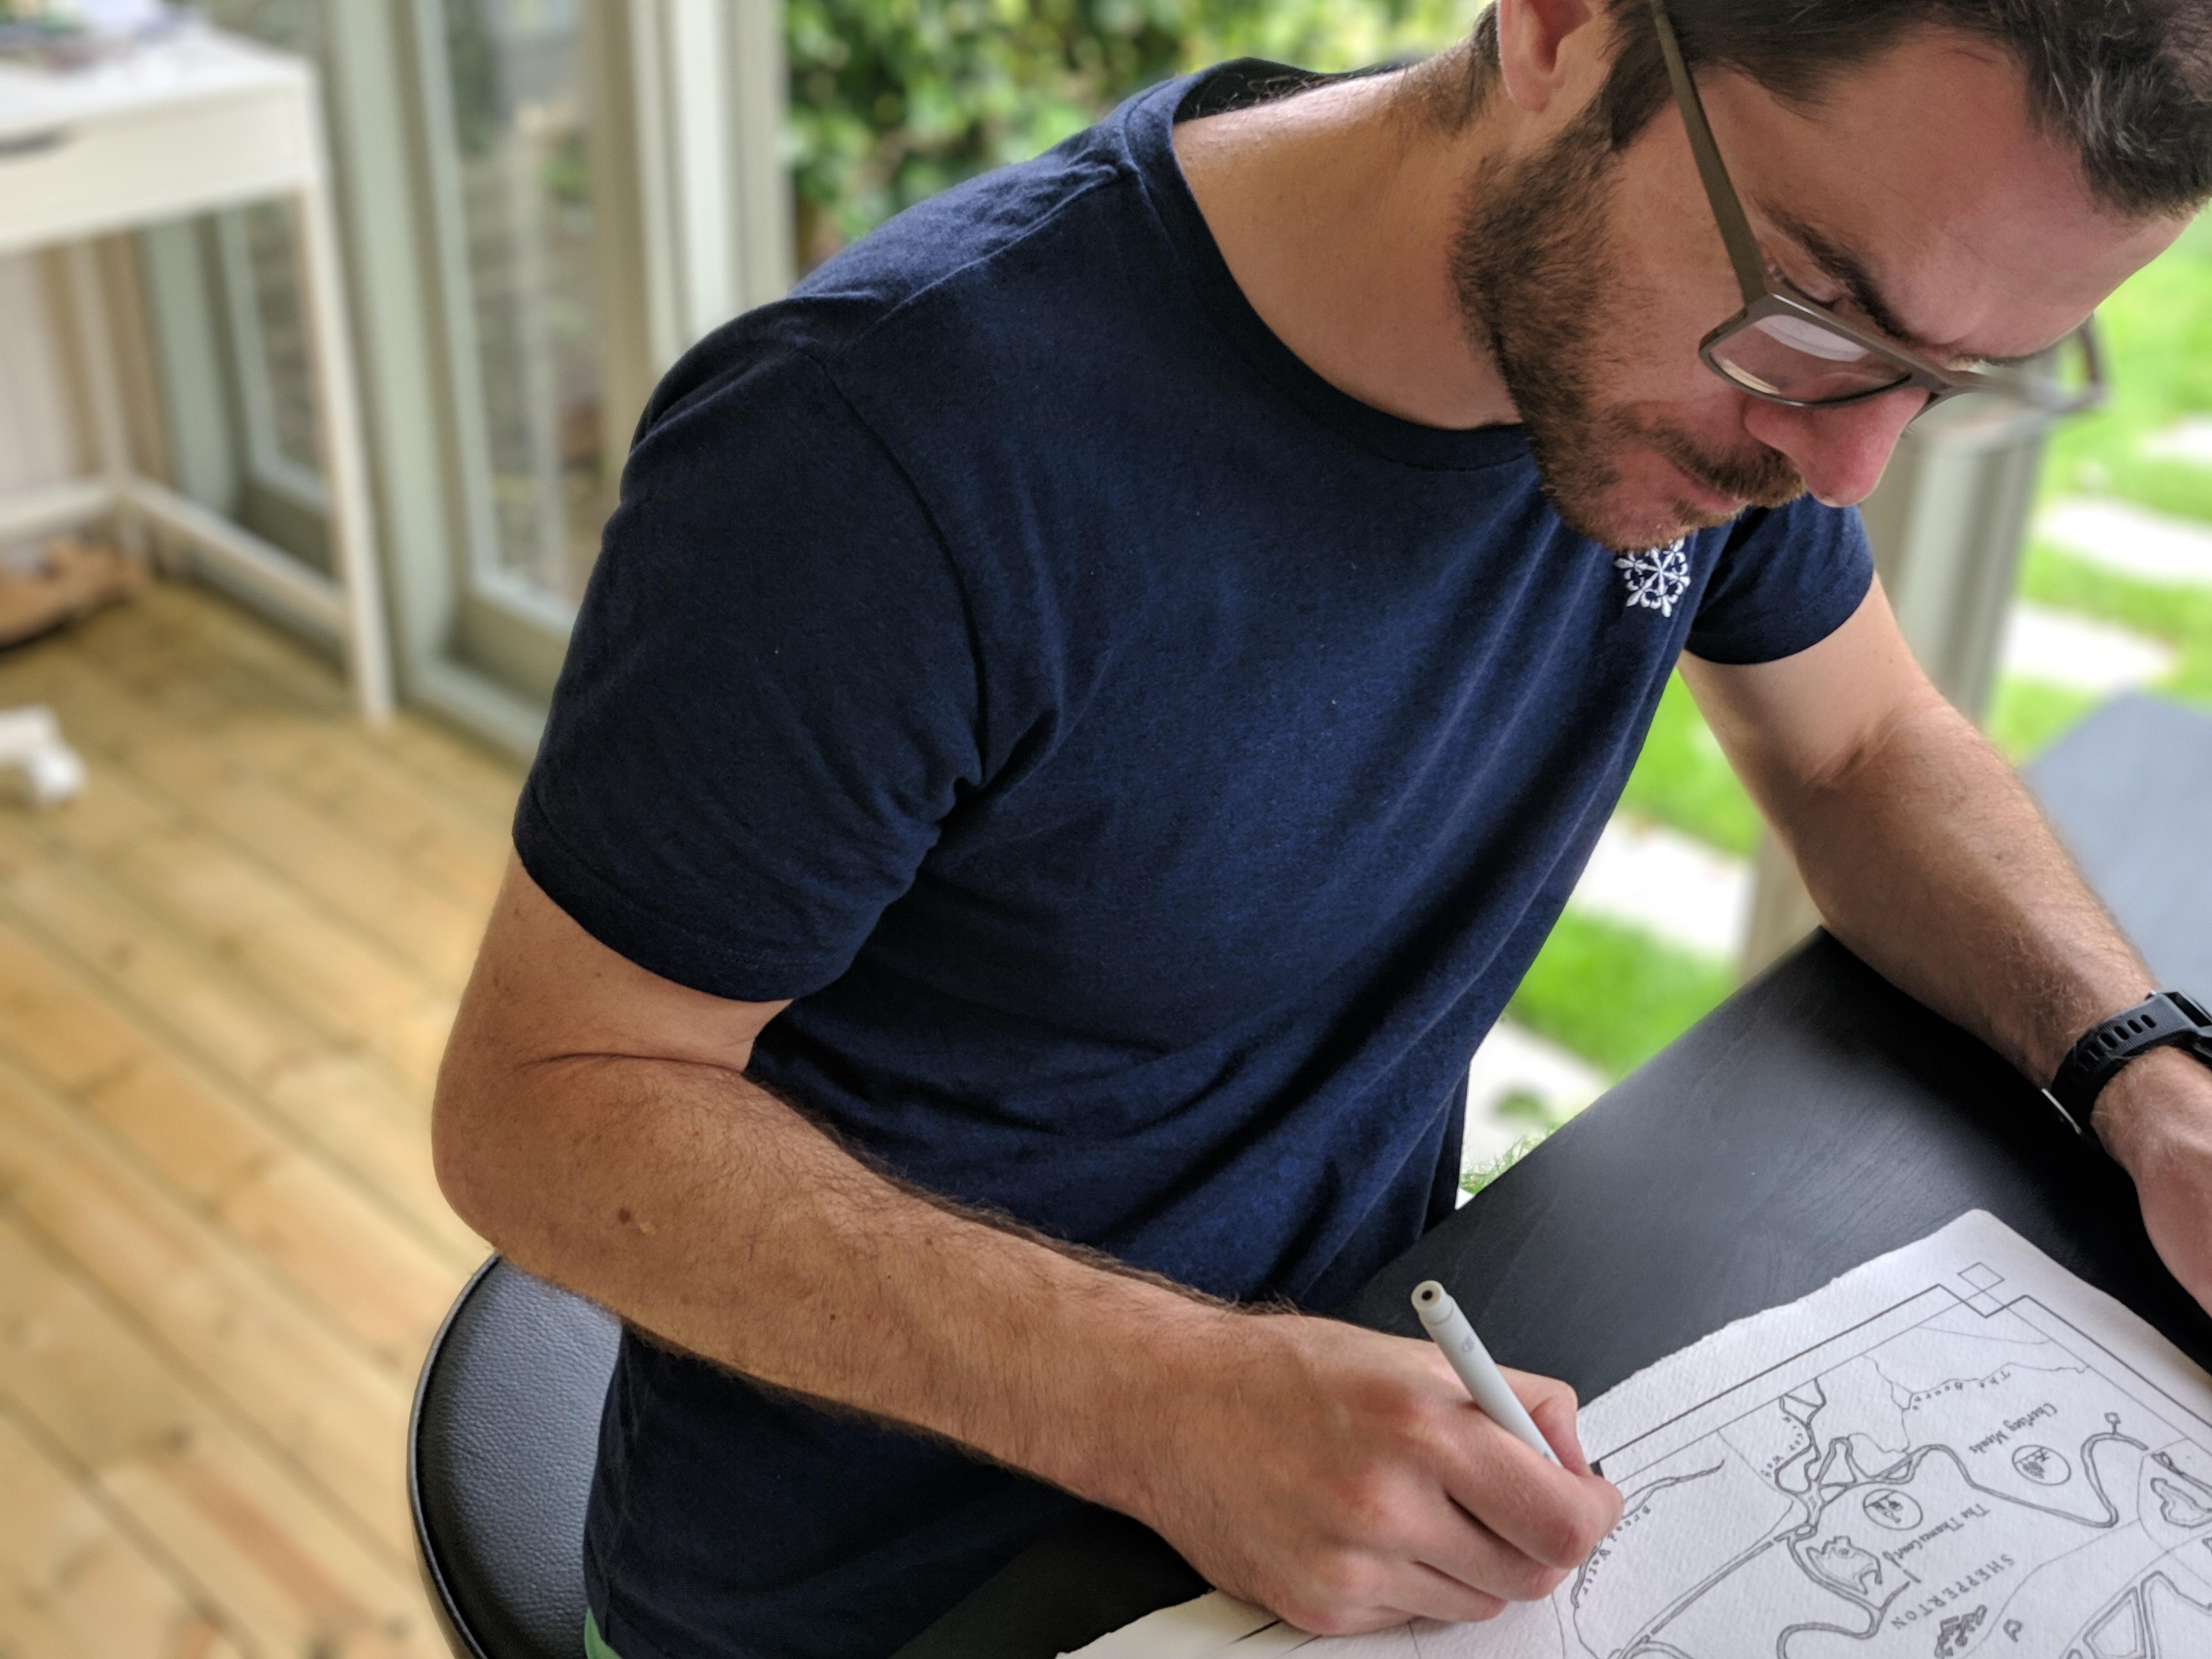 Owen Delaney of Waymarked Art creating a map of Shepperton and surrounding areas, Greater London. Created in Owen